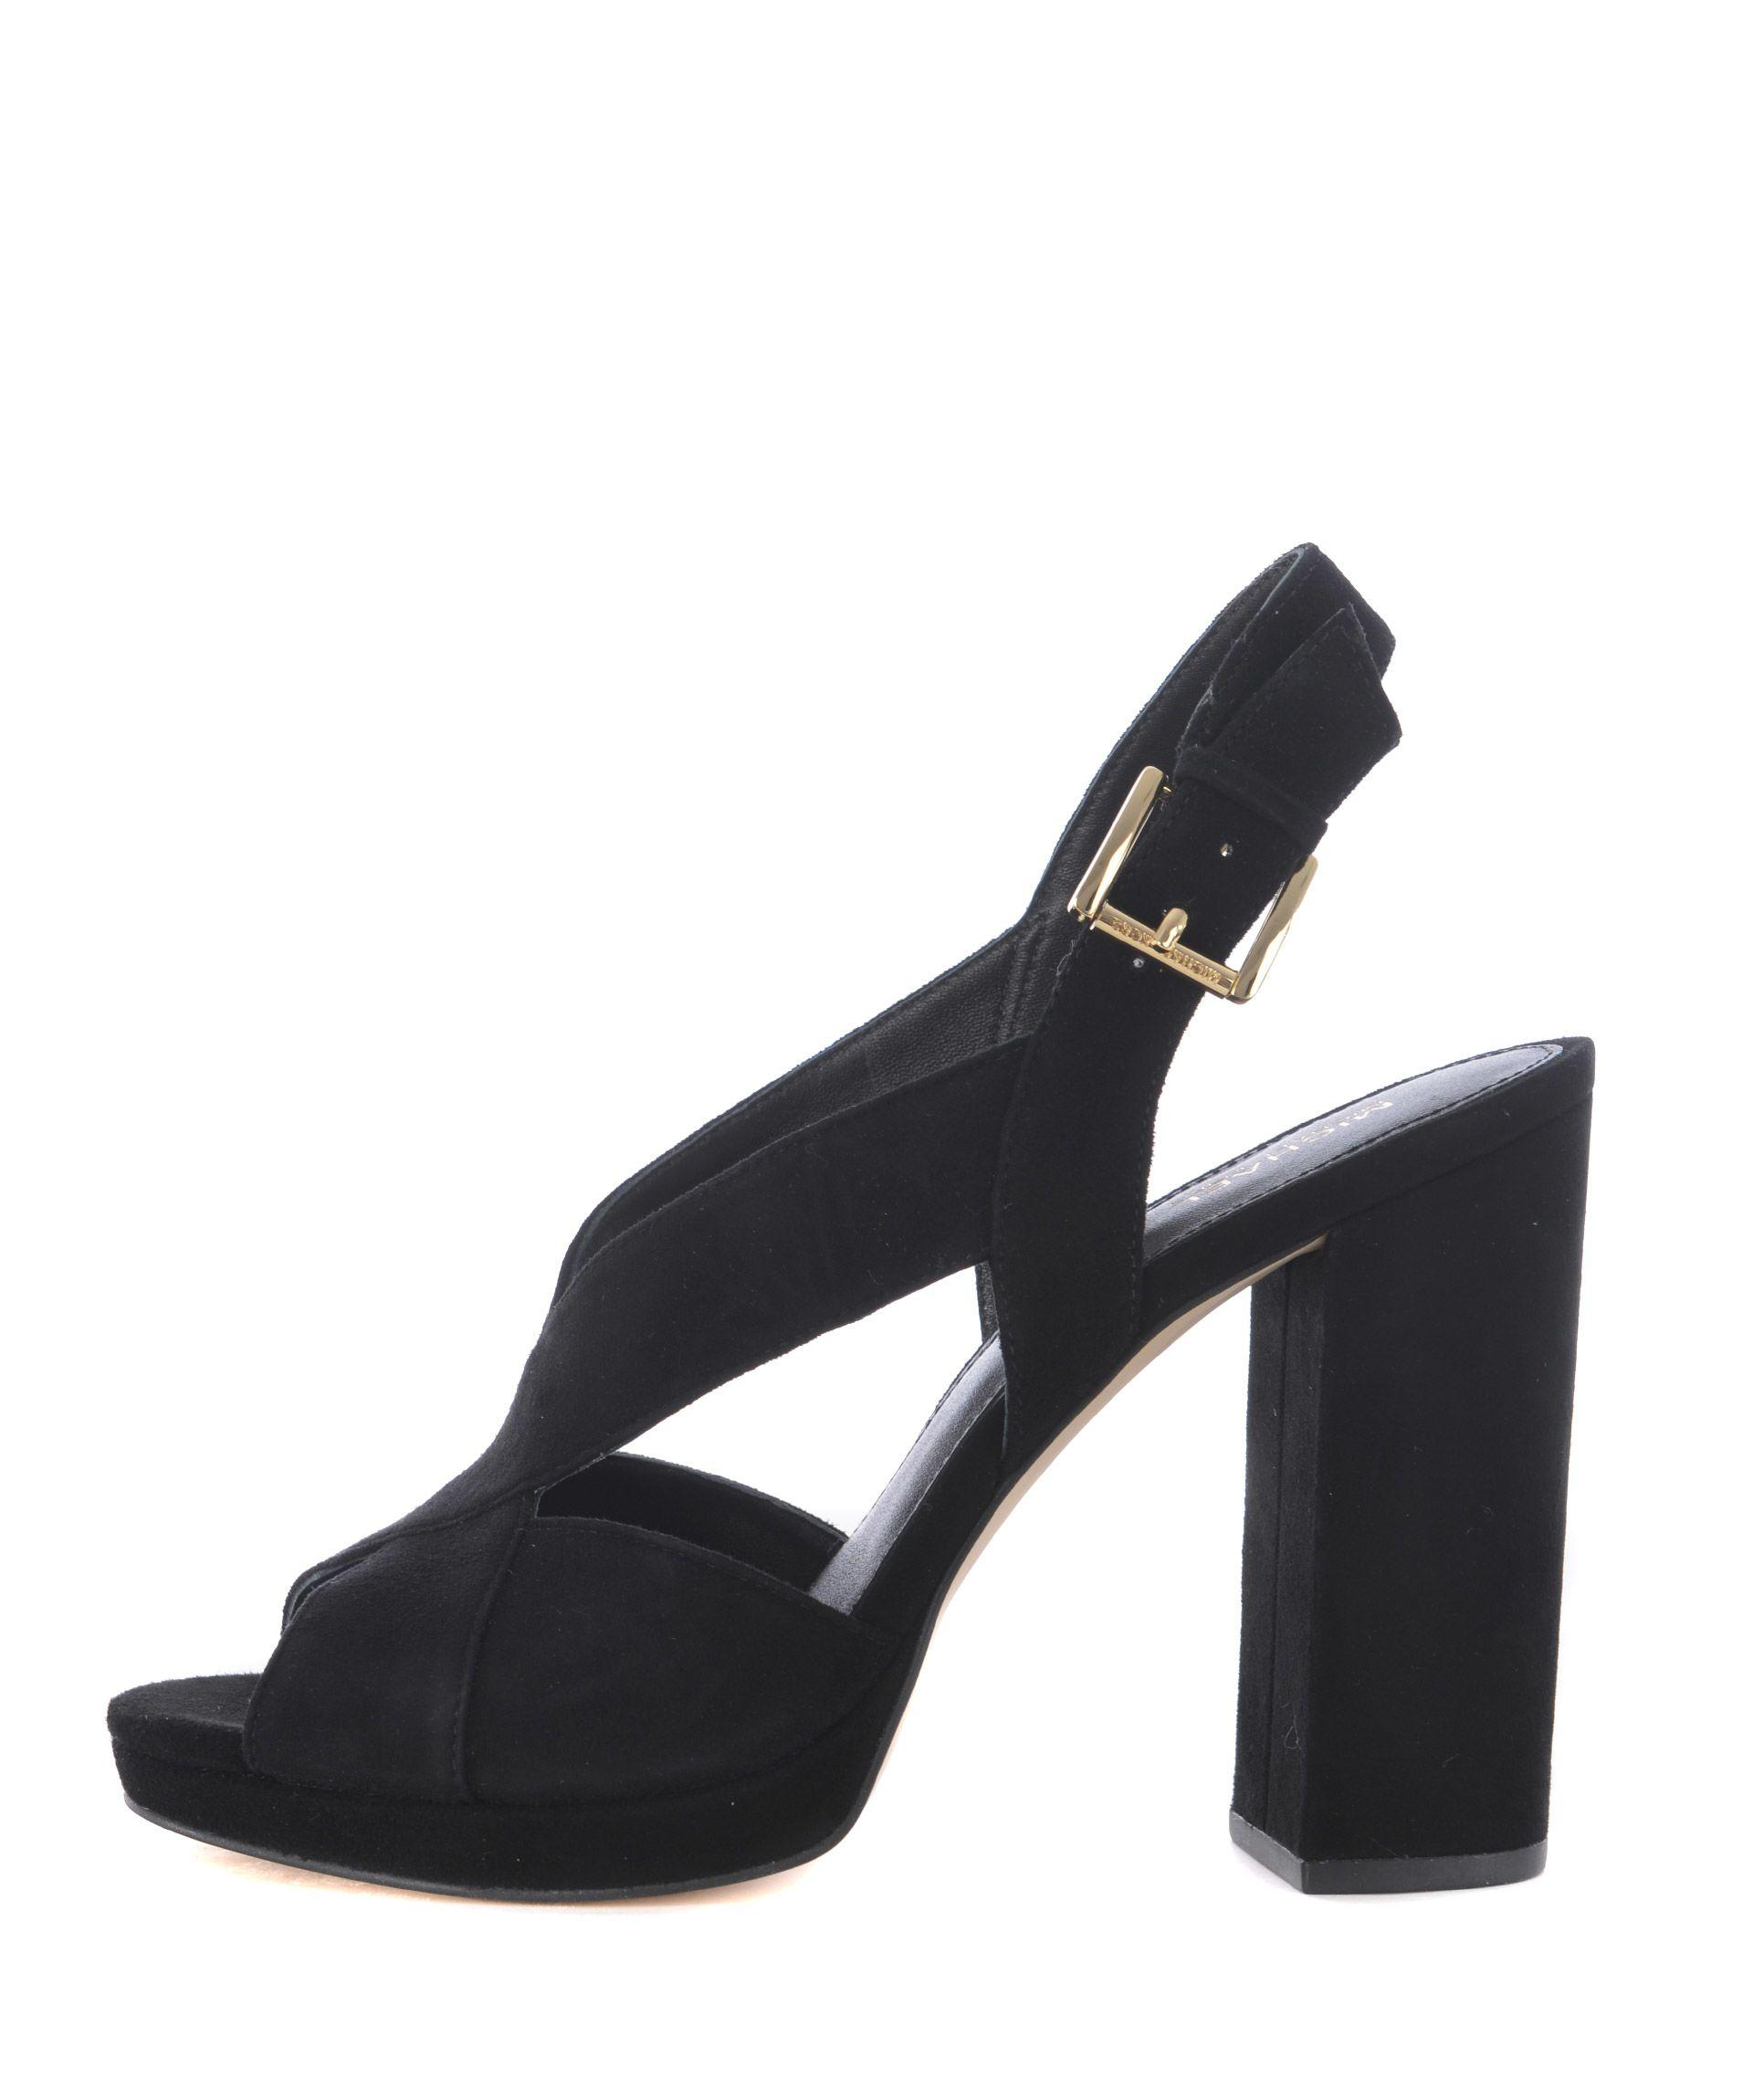 Michael Kors Ankle Length Sandals In Nero